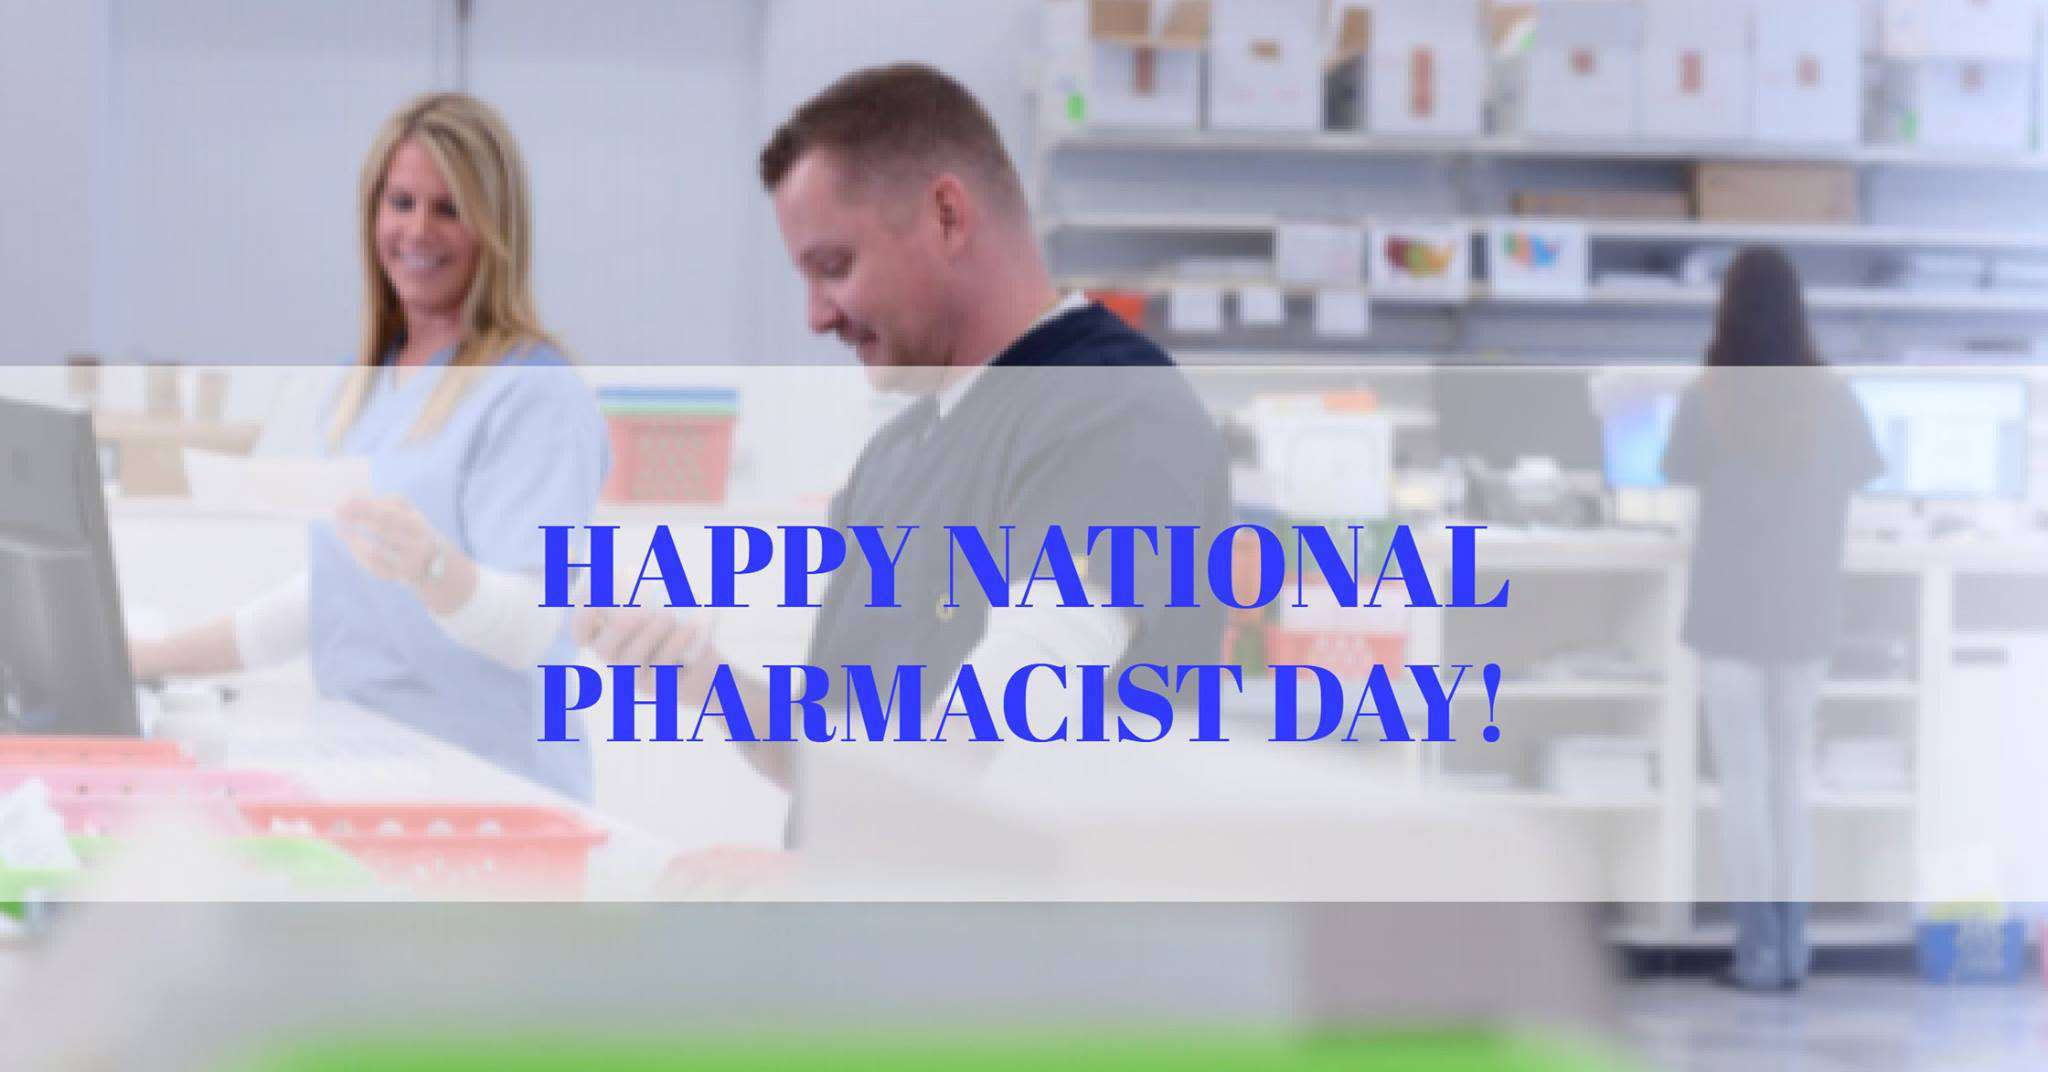 National Pharmacist Day Wishes pics free download